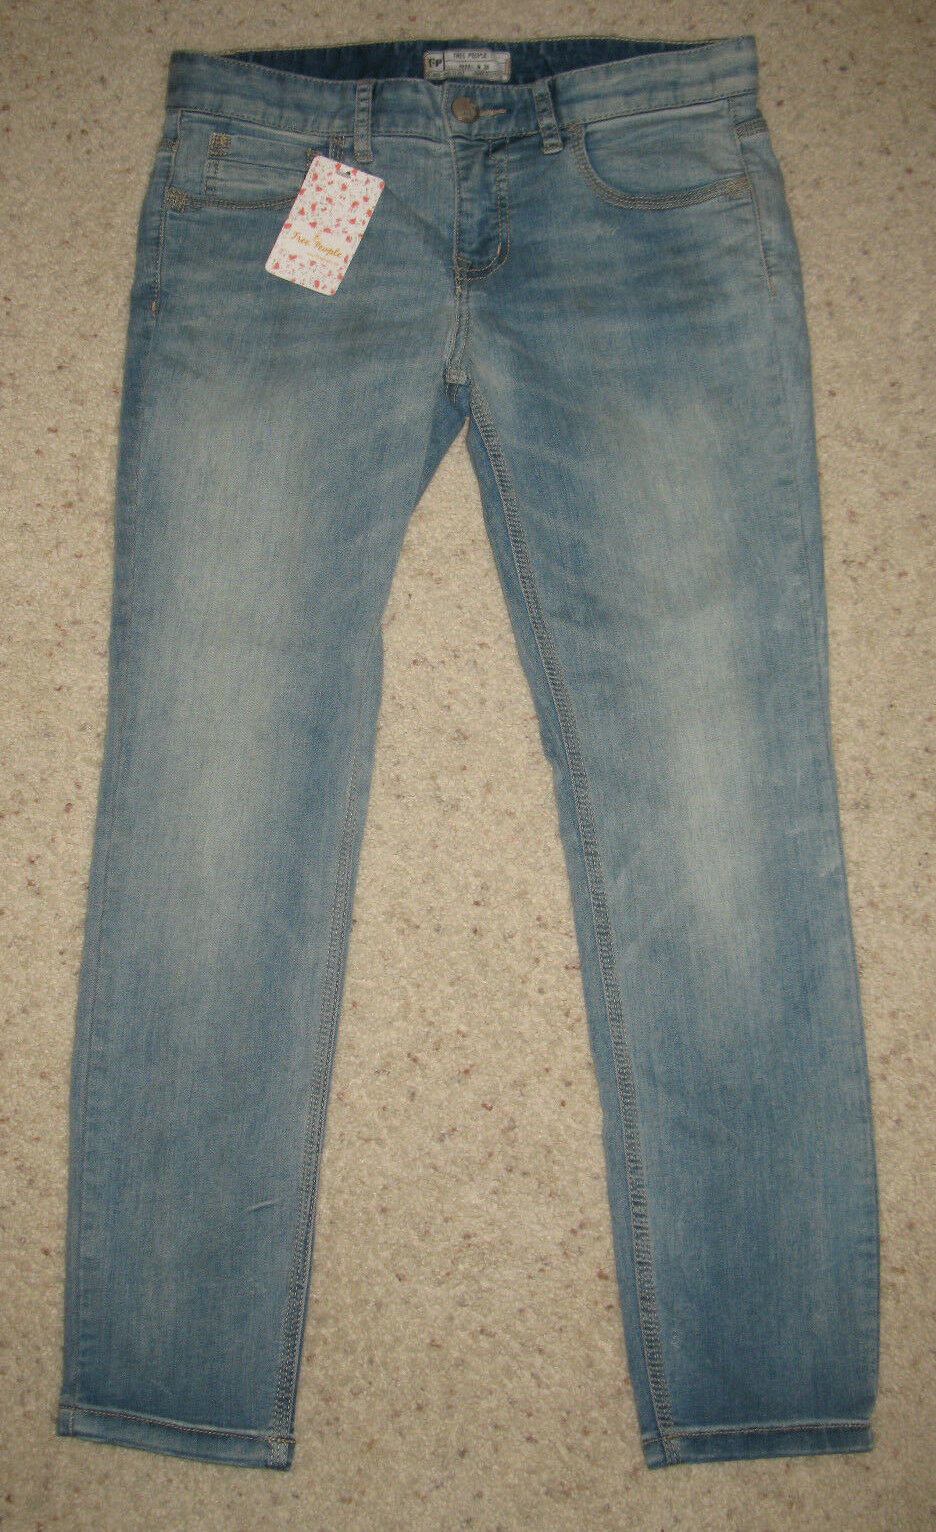 NWT Free People Cropped Capri Jeans Light Carrie Wash Size 28 Waist